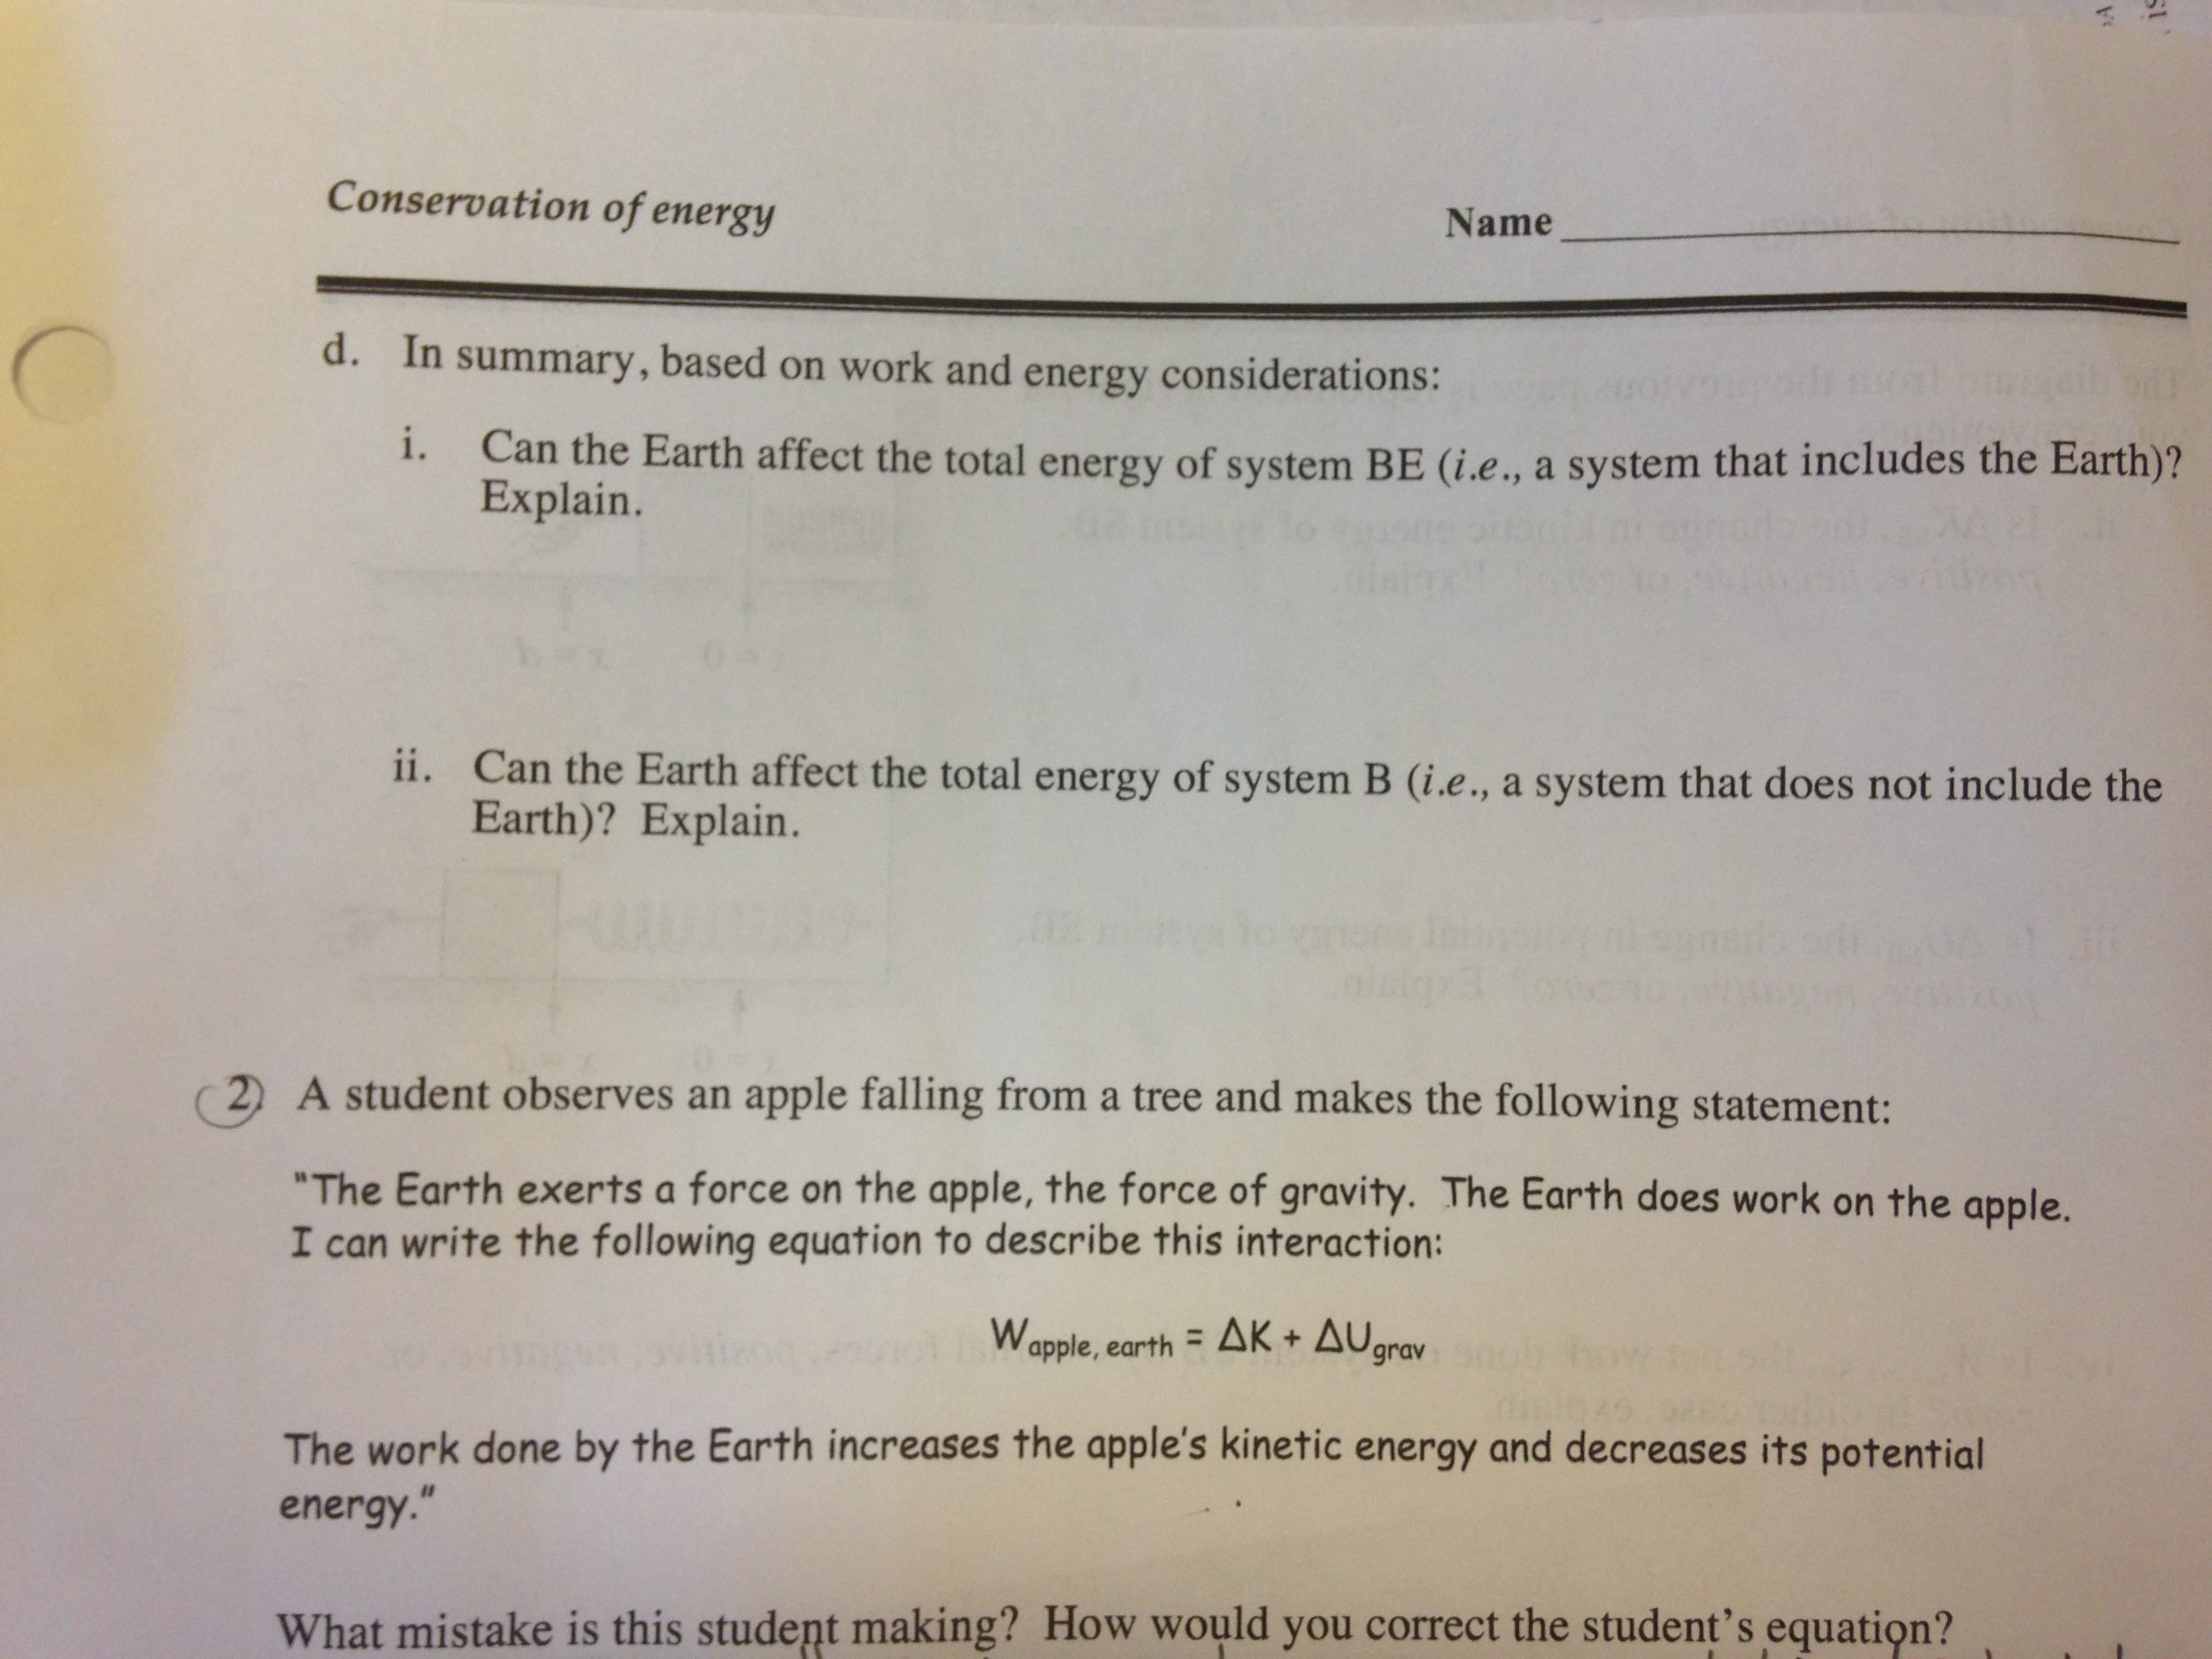 Worksheet The Earth Helps Me By Worksheet can someone help me with number 1 on this workshee chegg com there are 4 parts abcd and small to it as well so i would really appreciate if you all part t